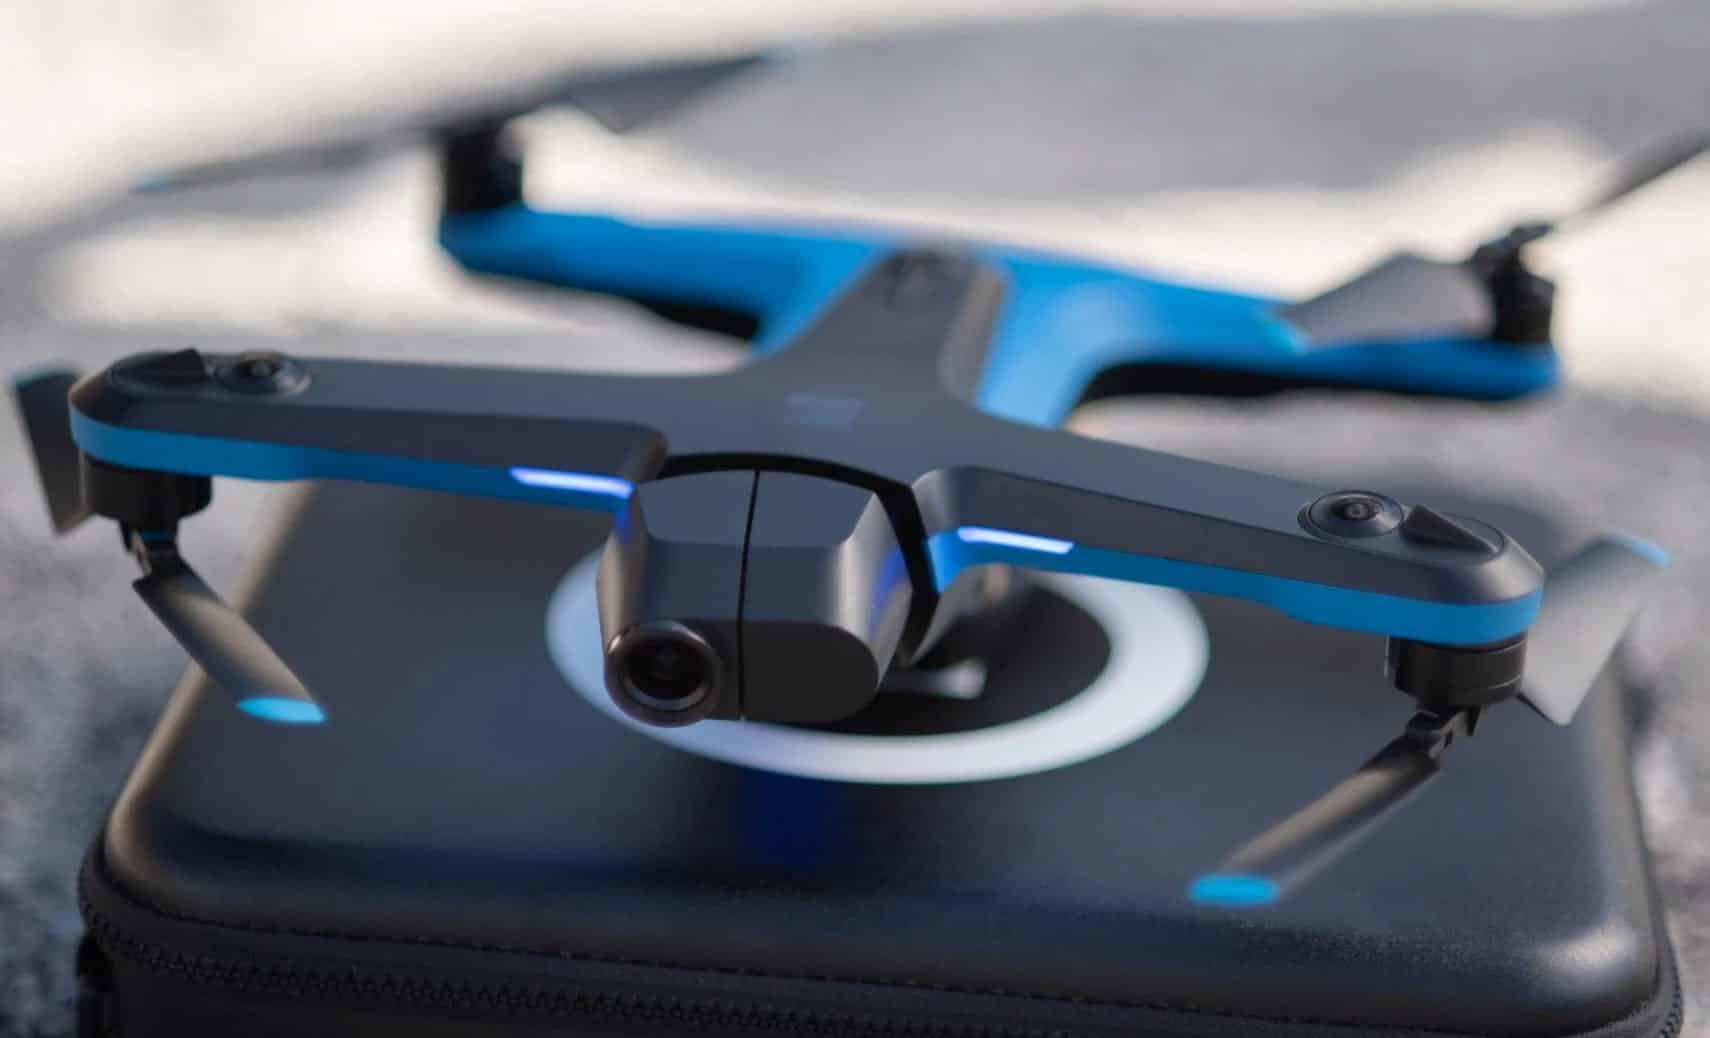 Skydio 2 production has restarted and shipping resumes